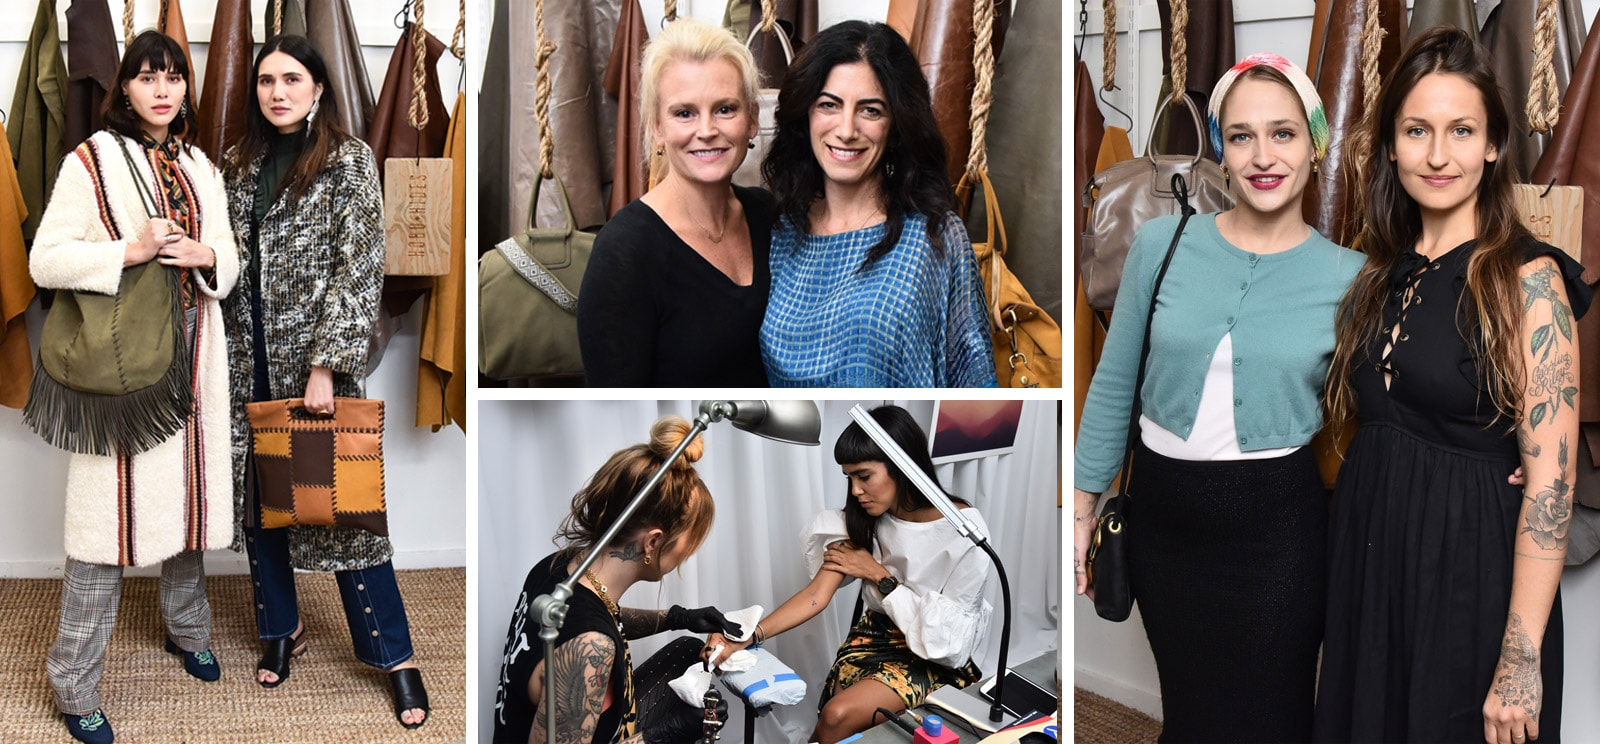 Our VIP Event was a celebration of Jemima Kirke's Hobo Artisan Series with popular NYC Bloggers